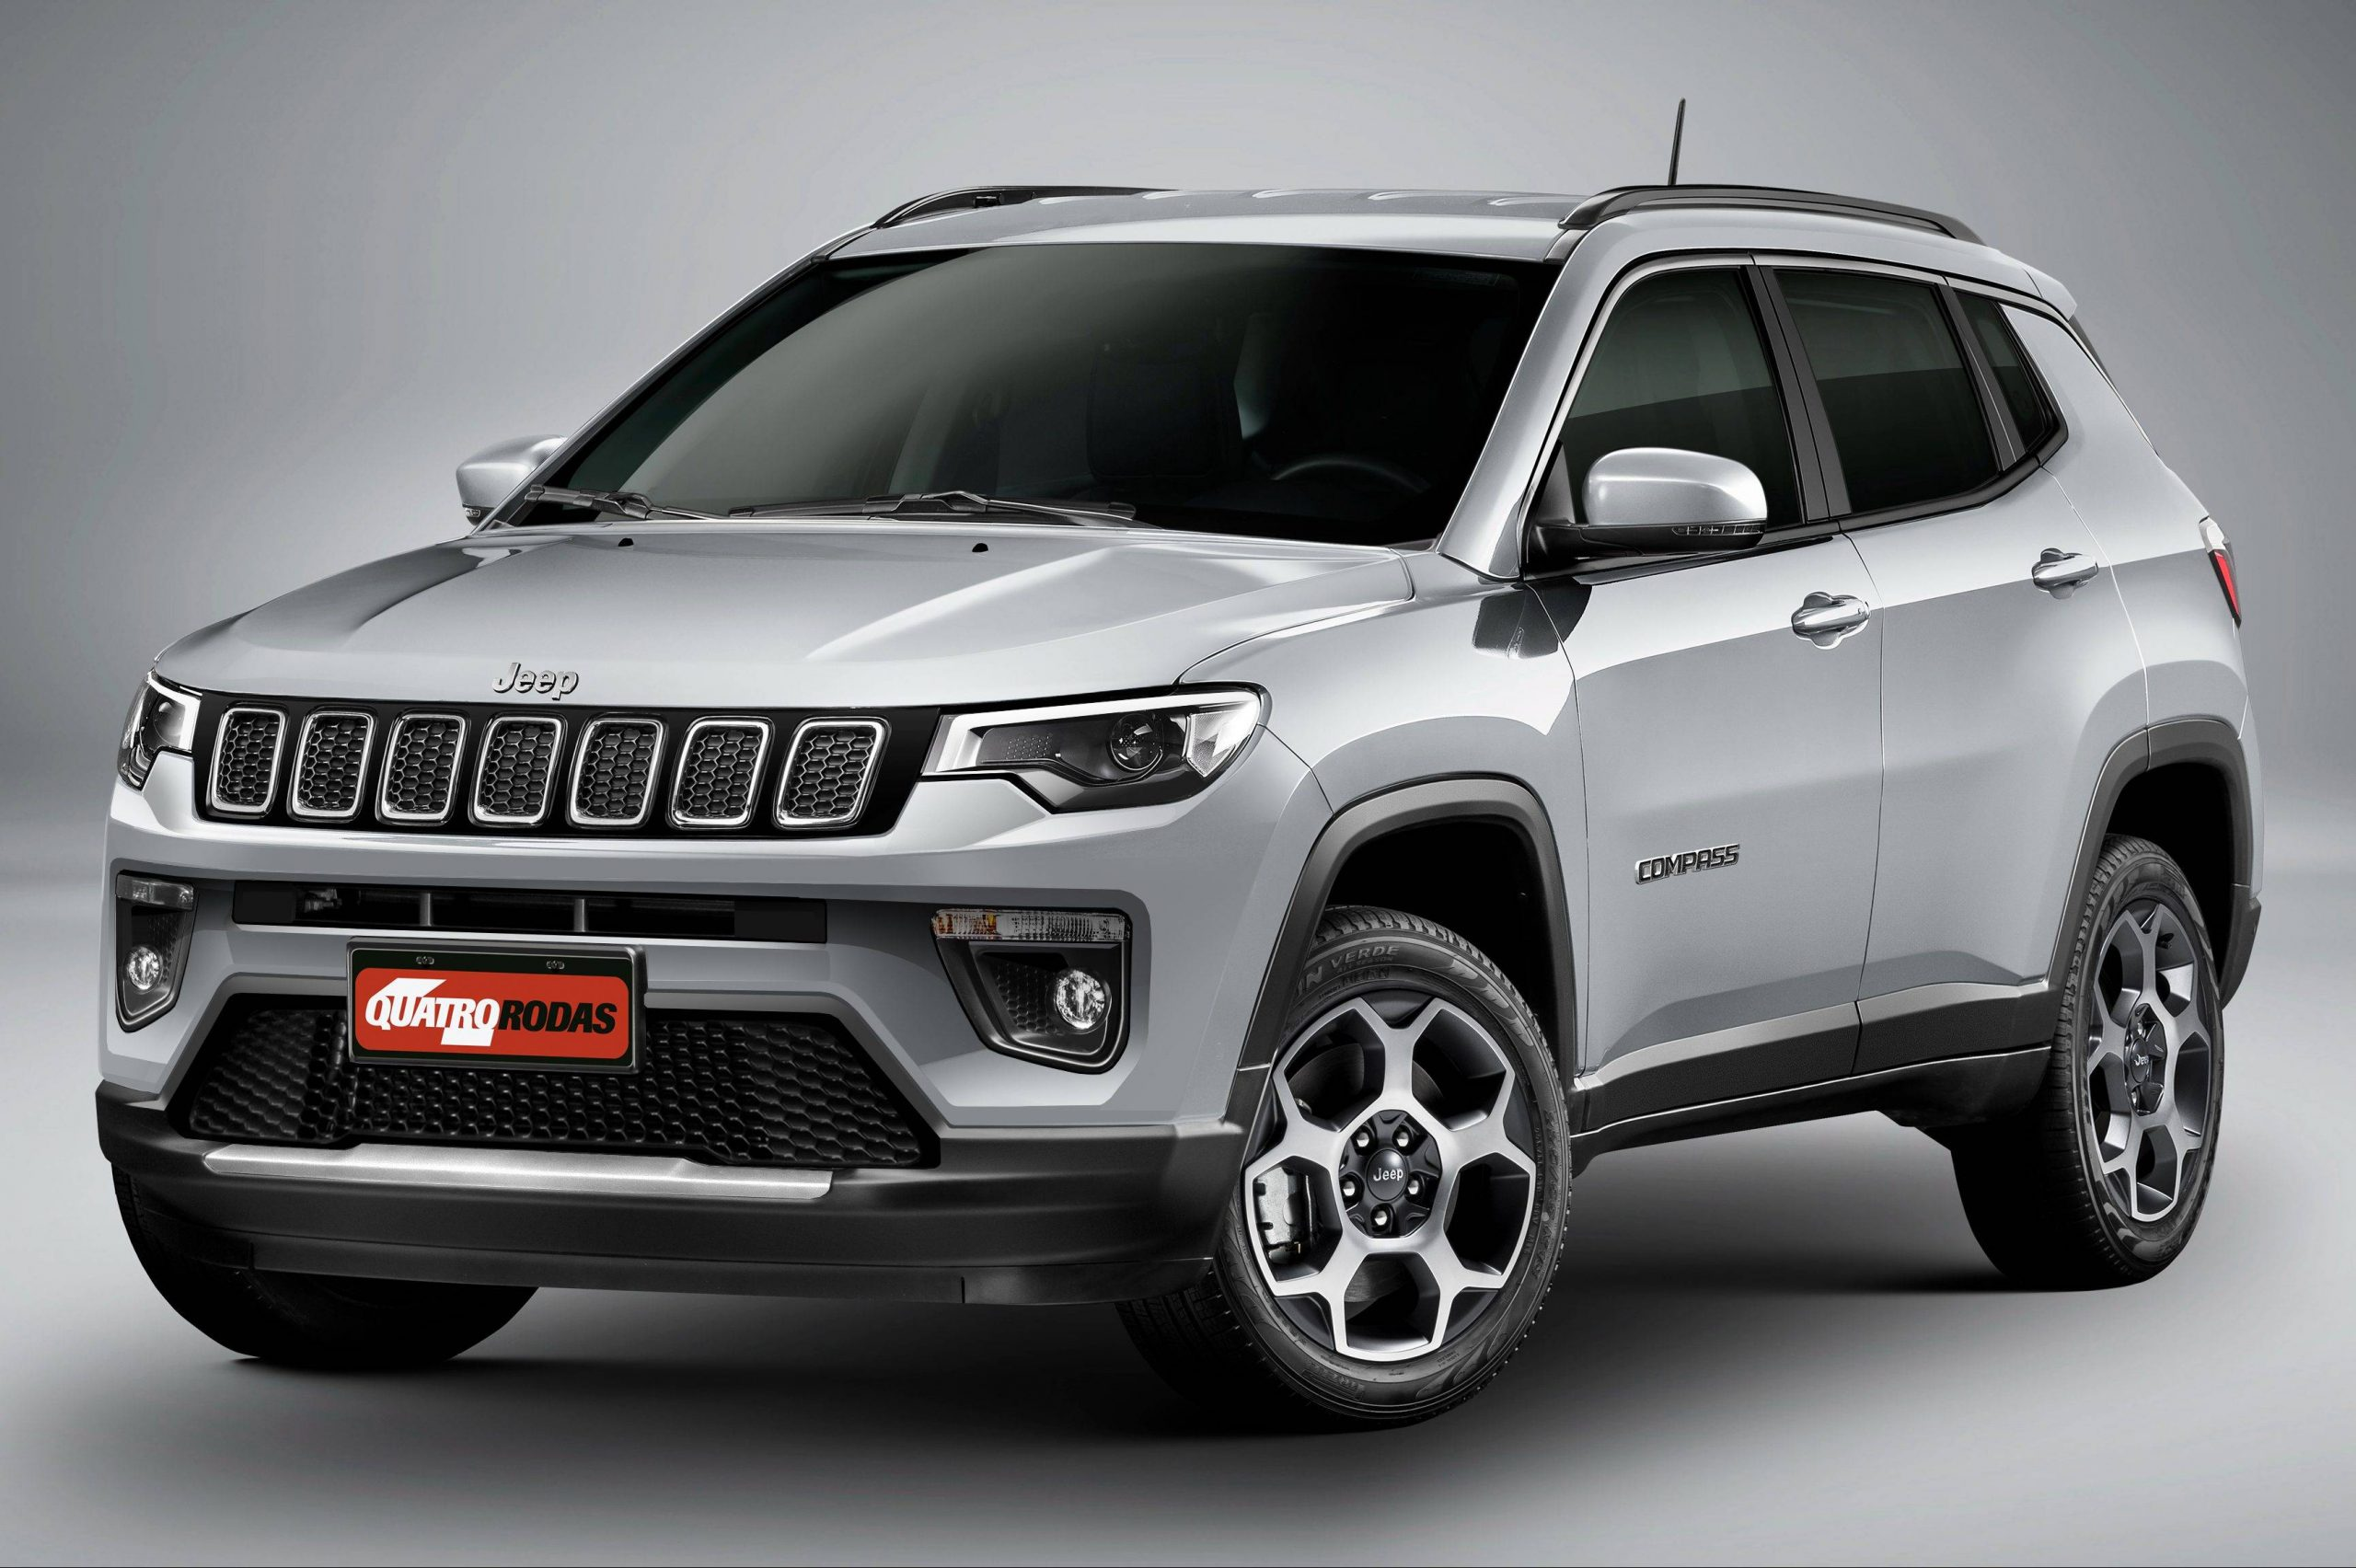 JEEP COMPASS 2021 1 scaled